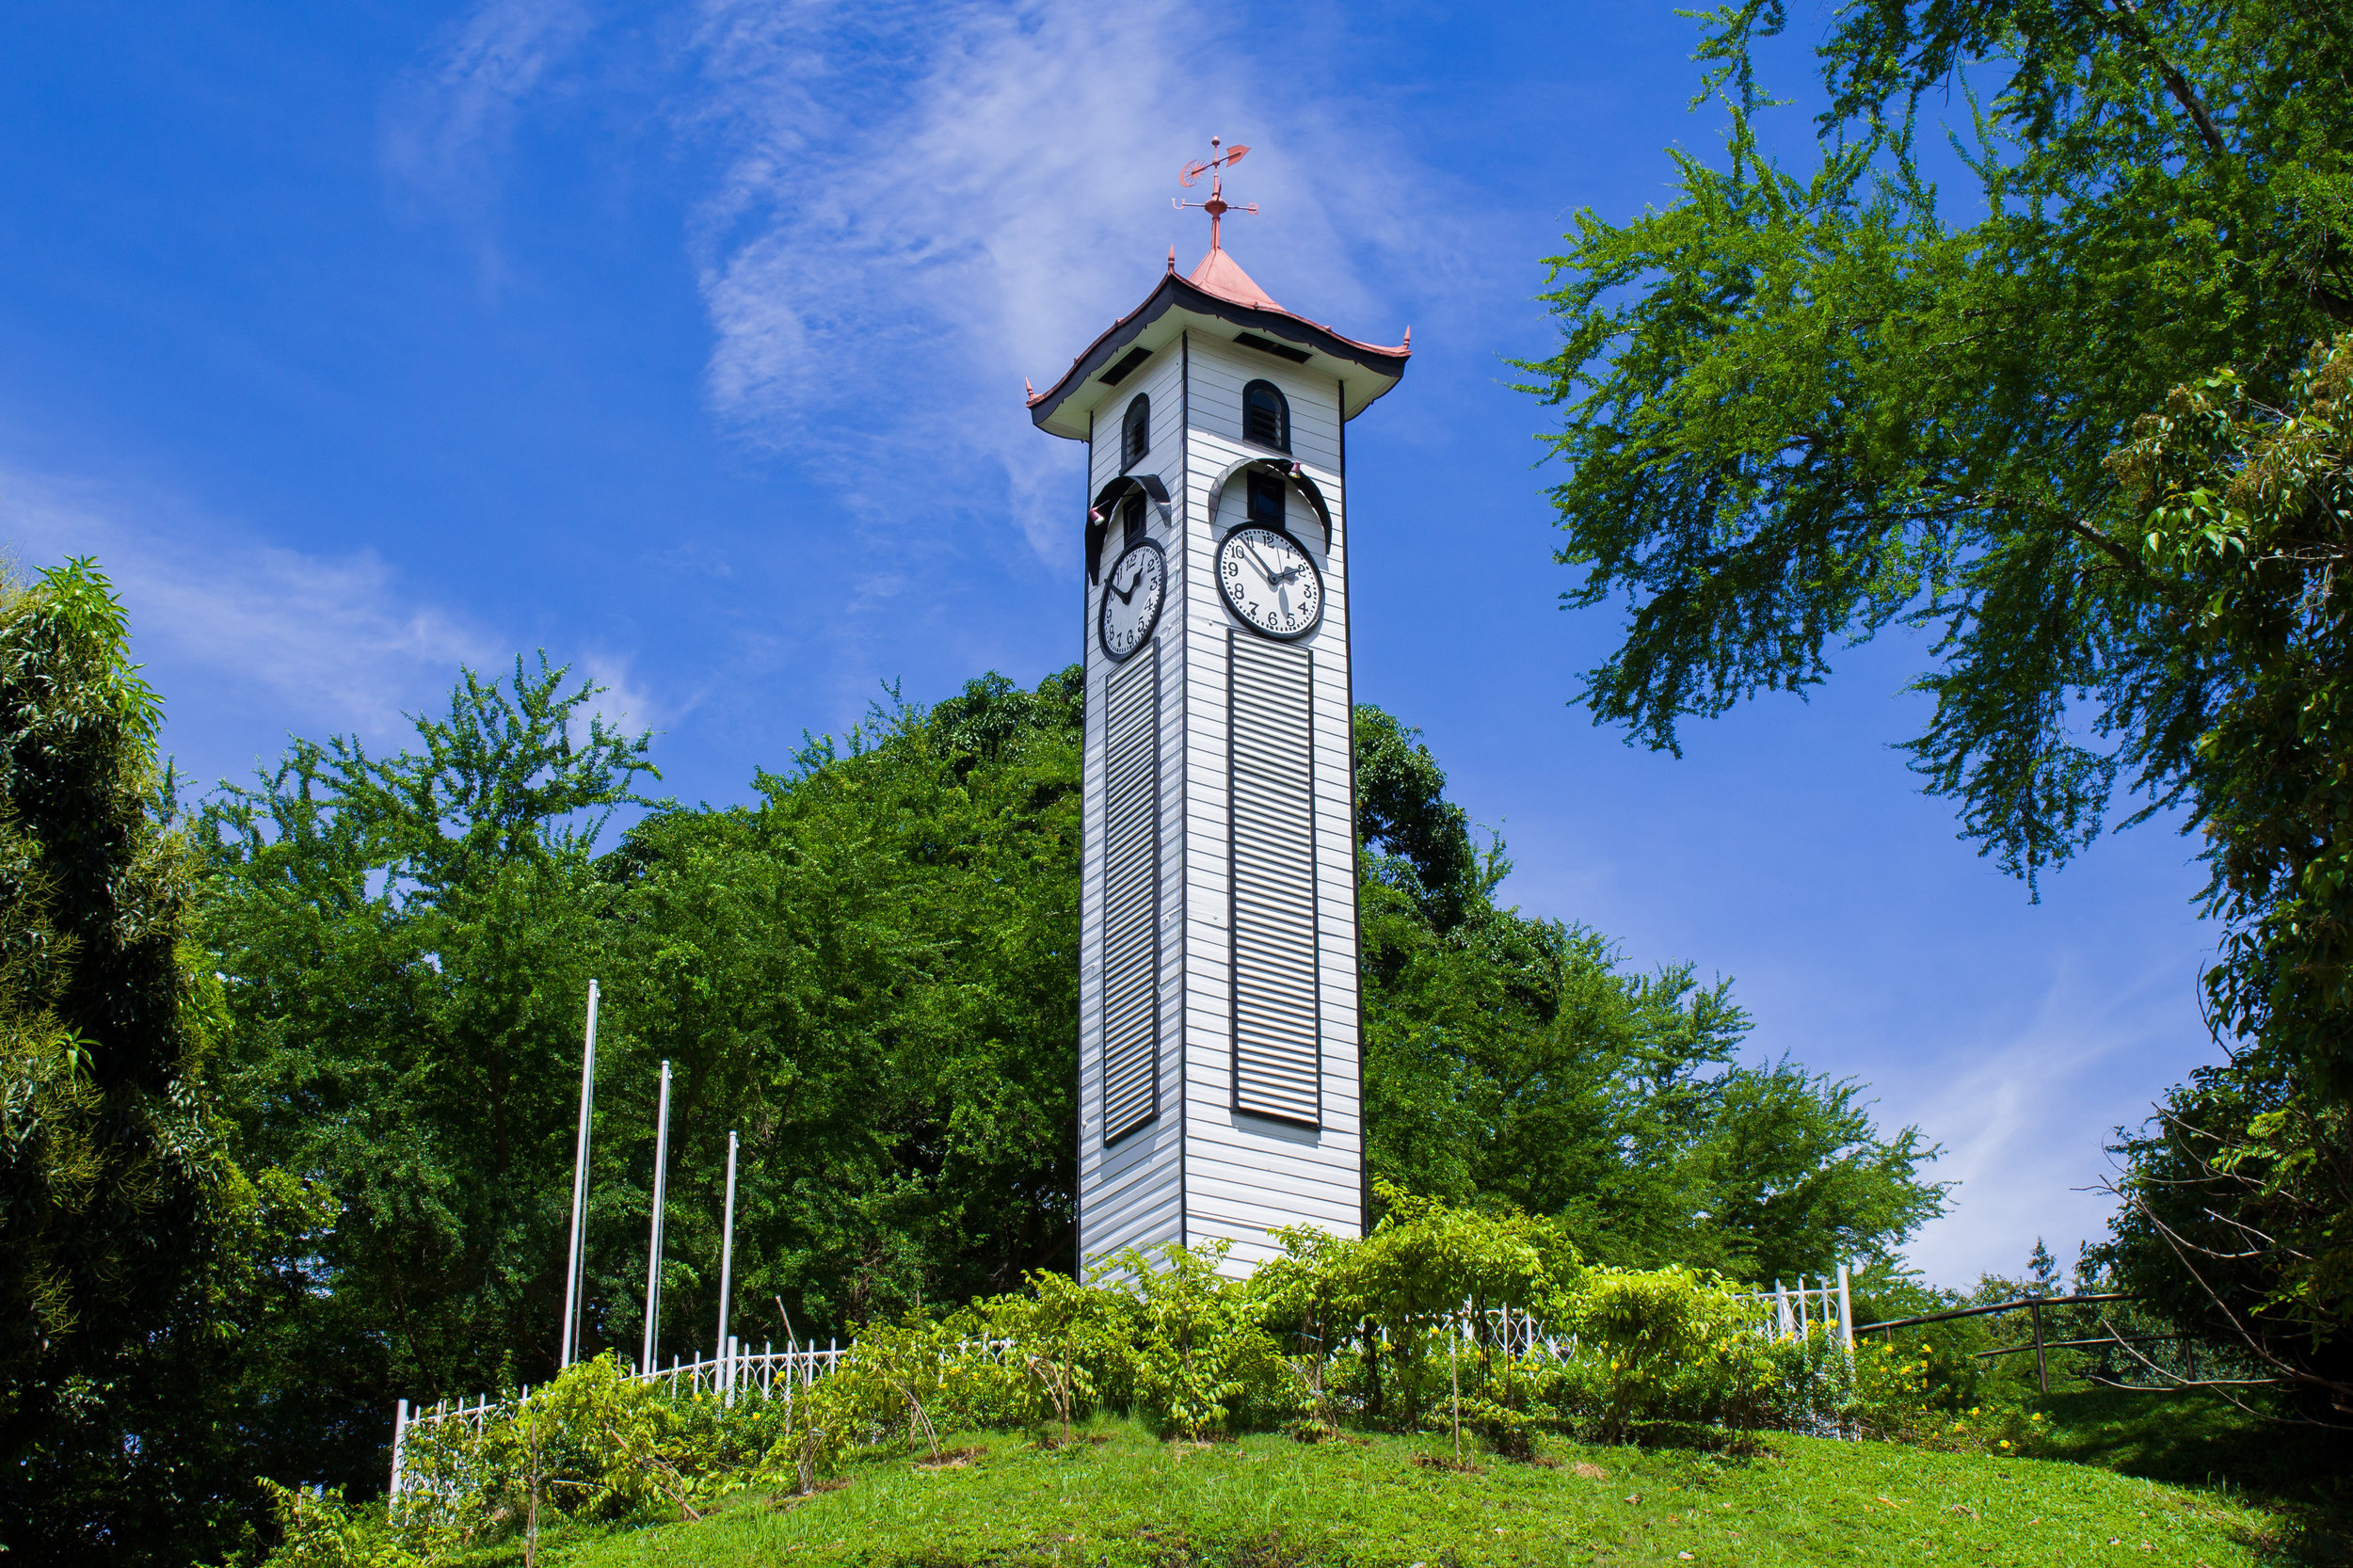 Atkinson Clock Tower is one of the oldest surviving buildings in KK